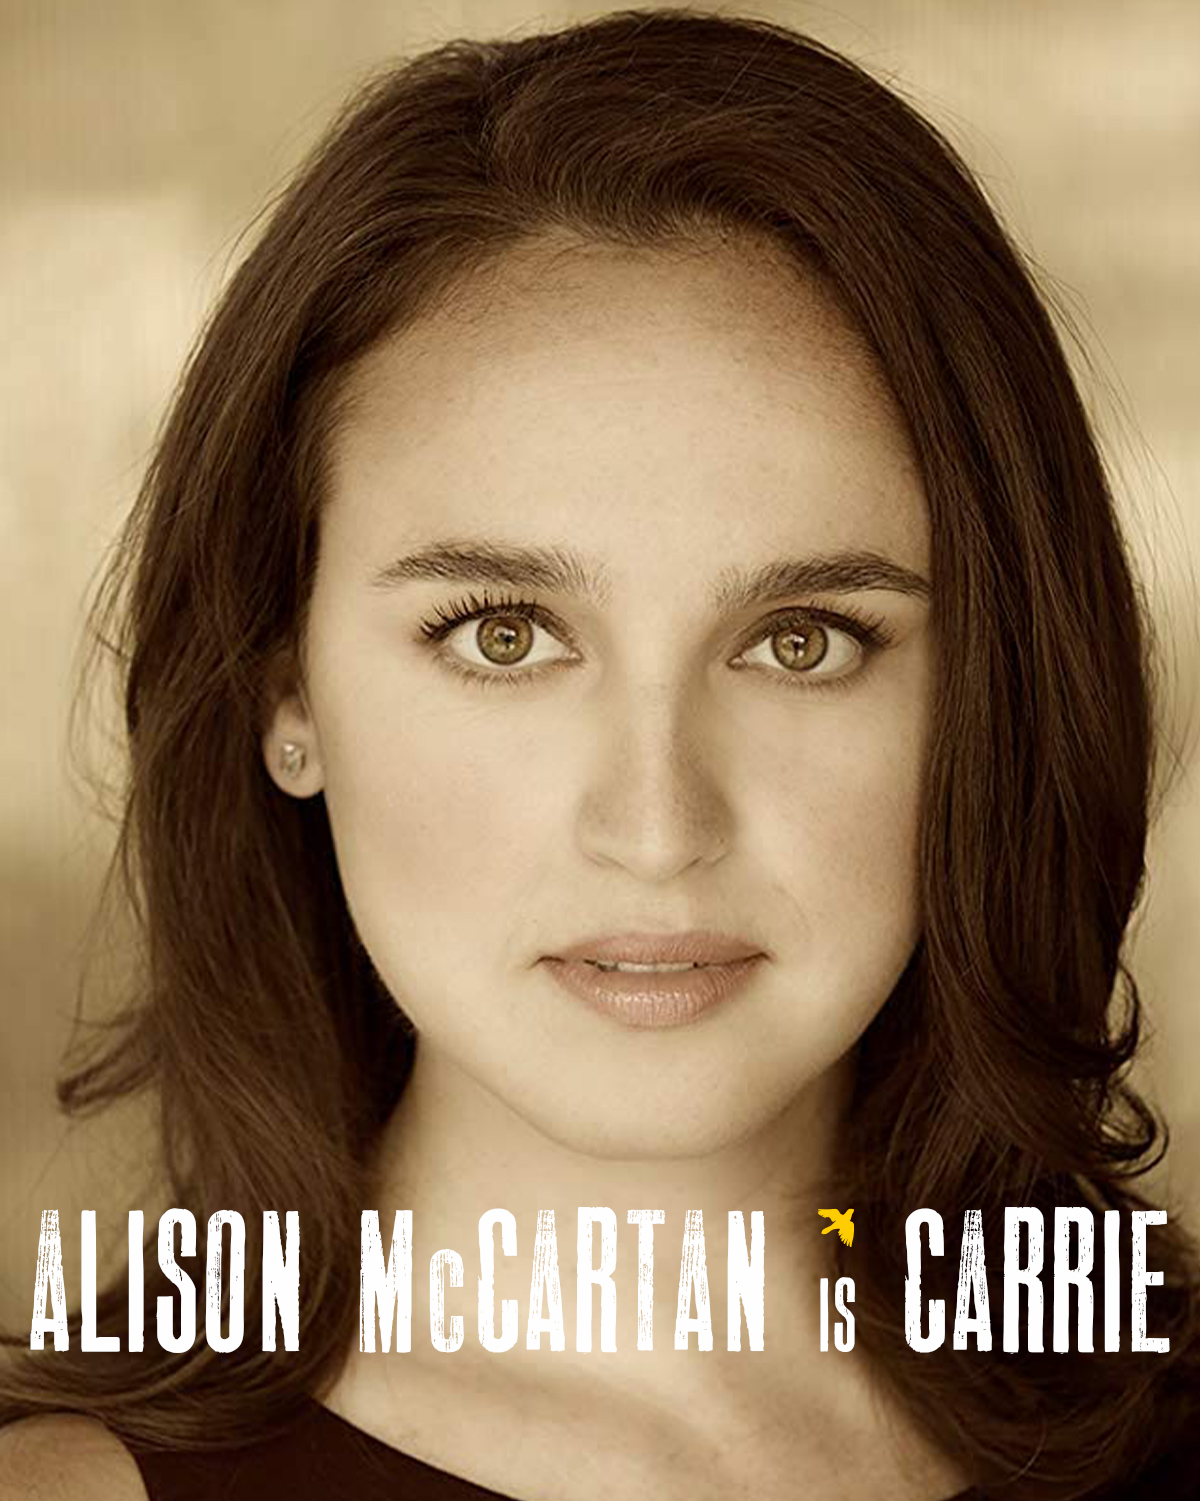 ALISON McCARTAN  (Carrie Bishop,  Storming Heaven ) is delighted to make her WVPT debut! National Tour:  Shrek the Musical . Off-Broadway:  Promises, Promises  - in Concert (Transport Group);  Calamity   Jane  (Theatre Row.) Regional:  Violet  (IRNE award),  Bad   Jews  (SpeakEasy Stage);  The   Drowsy   Chaperone ,  Dames at Sea ,  Steel   Magnolias ,  42nd   Street  (The Wick);  A Chorus Line  (Weston);  Next to Normal  (Hangar.) TV:  Law & Order: SVU . Alison would like to thank everyone on the  Storming Heaven  team, Henderson Hogan, Nancy Kremer, and her incredible family and loved ones for their constant support. Thoughts Become Things!  @alisoncatherine